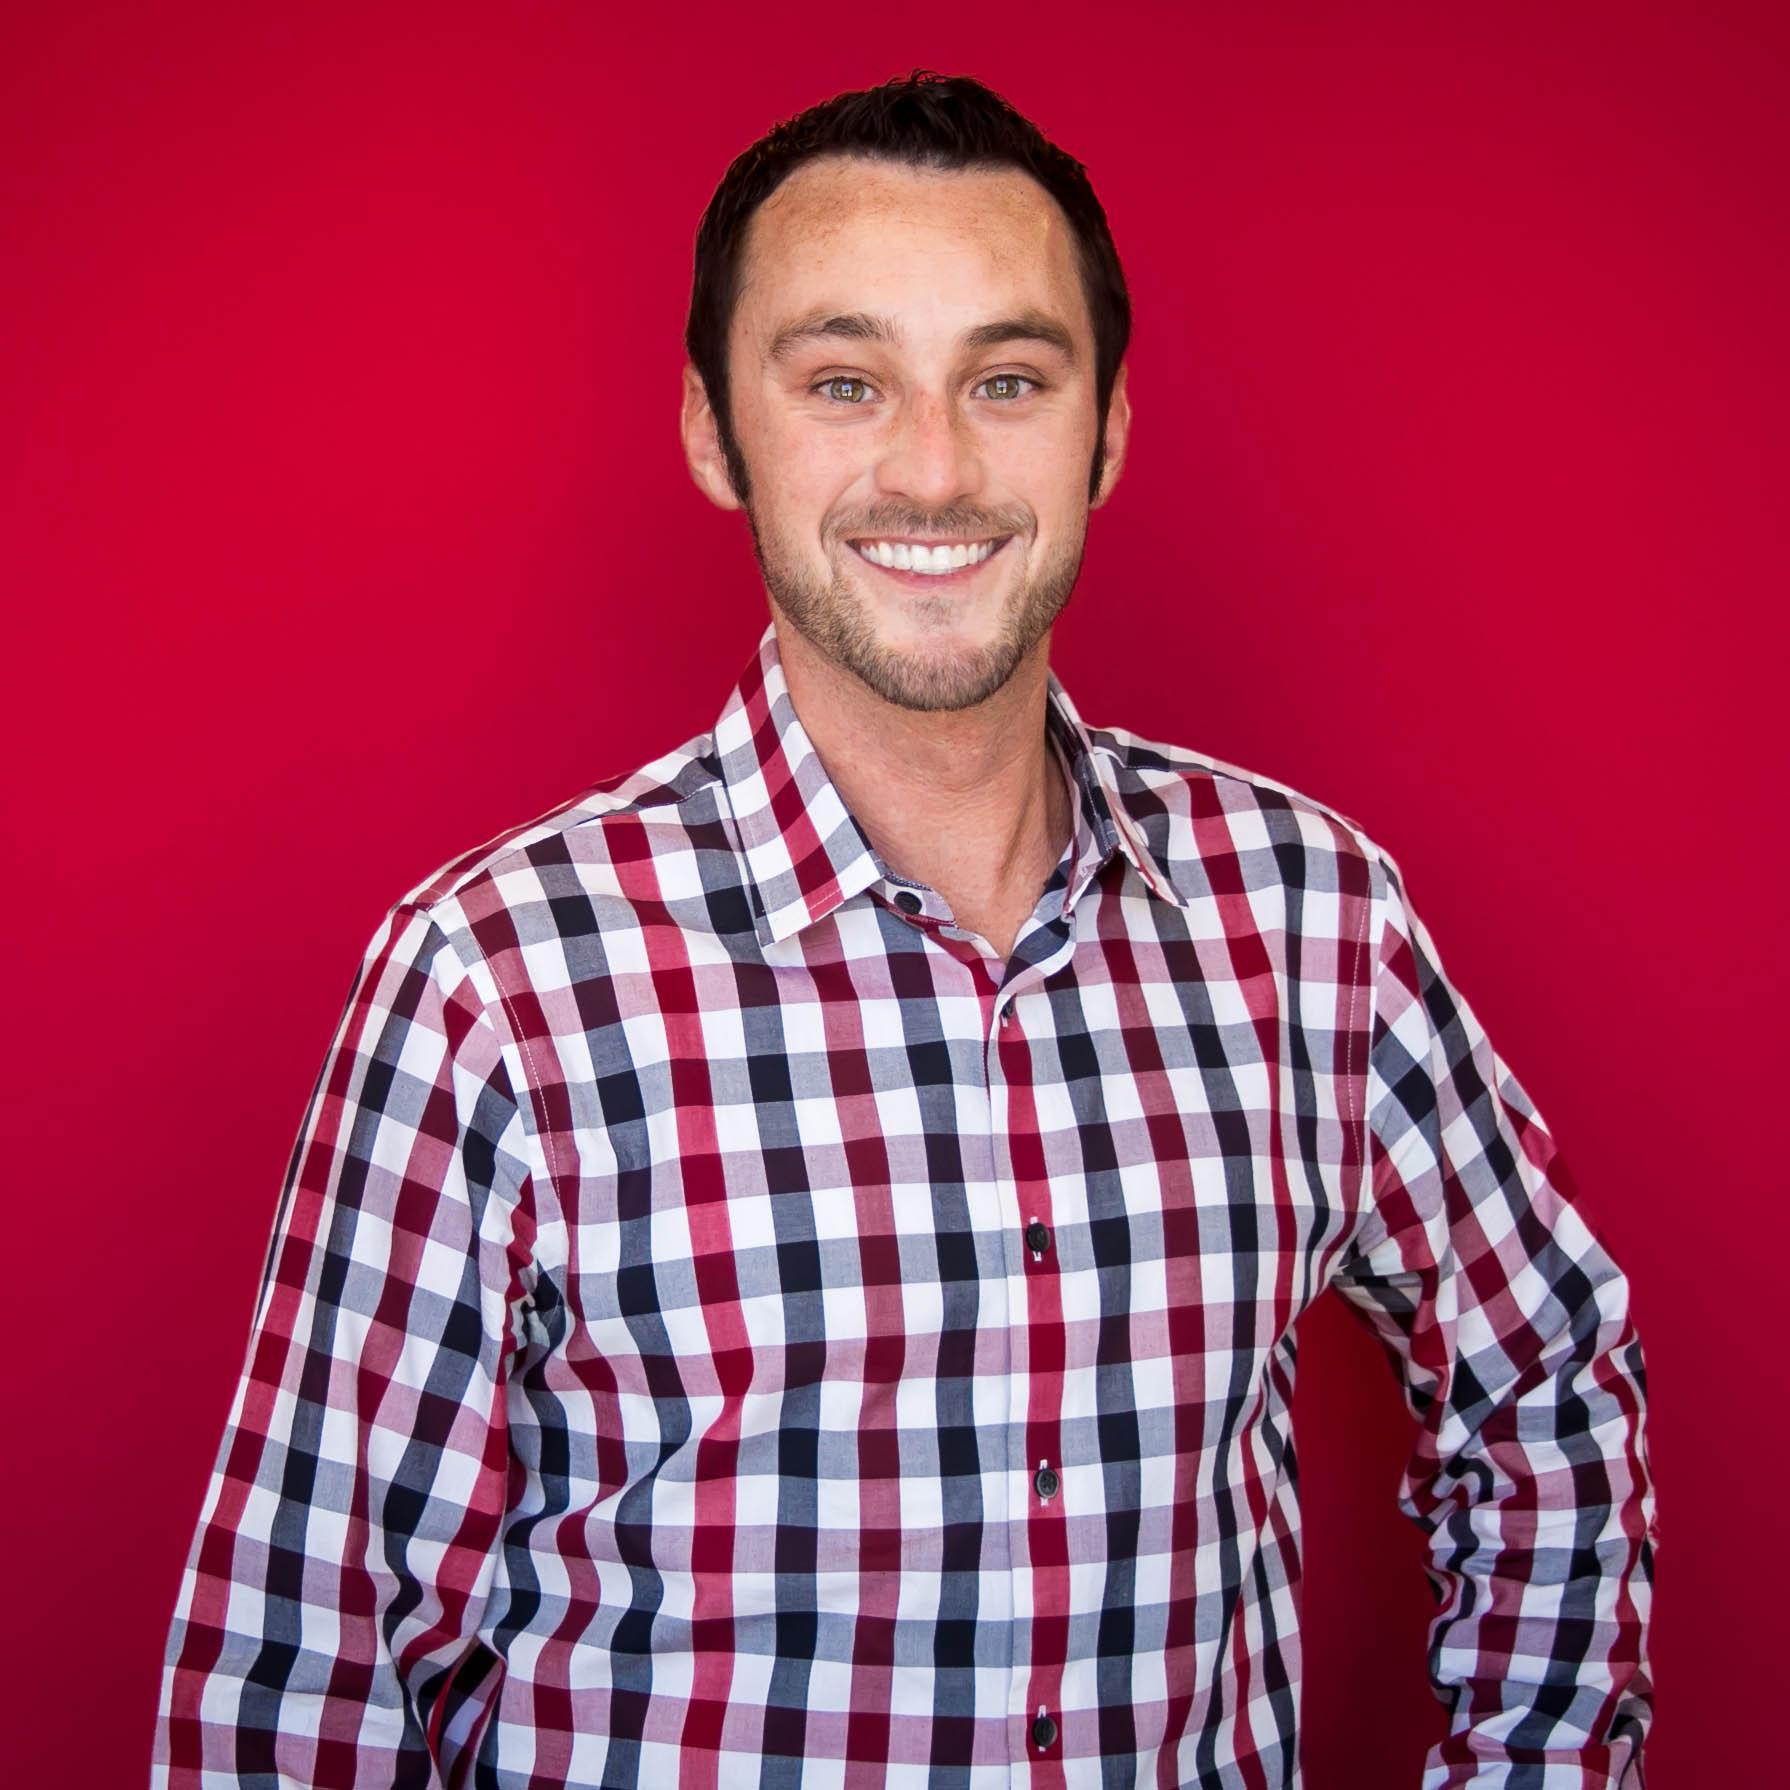 Cody Faldyn, Manager, Paid Social, iProspect